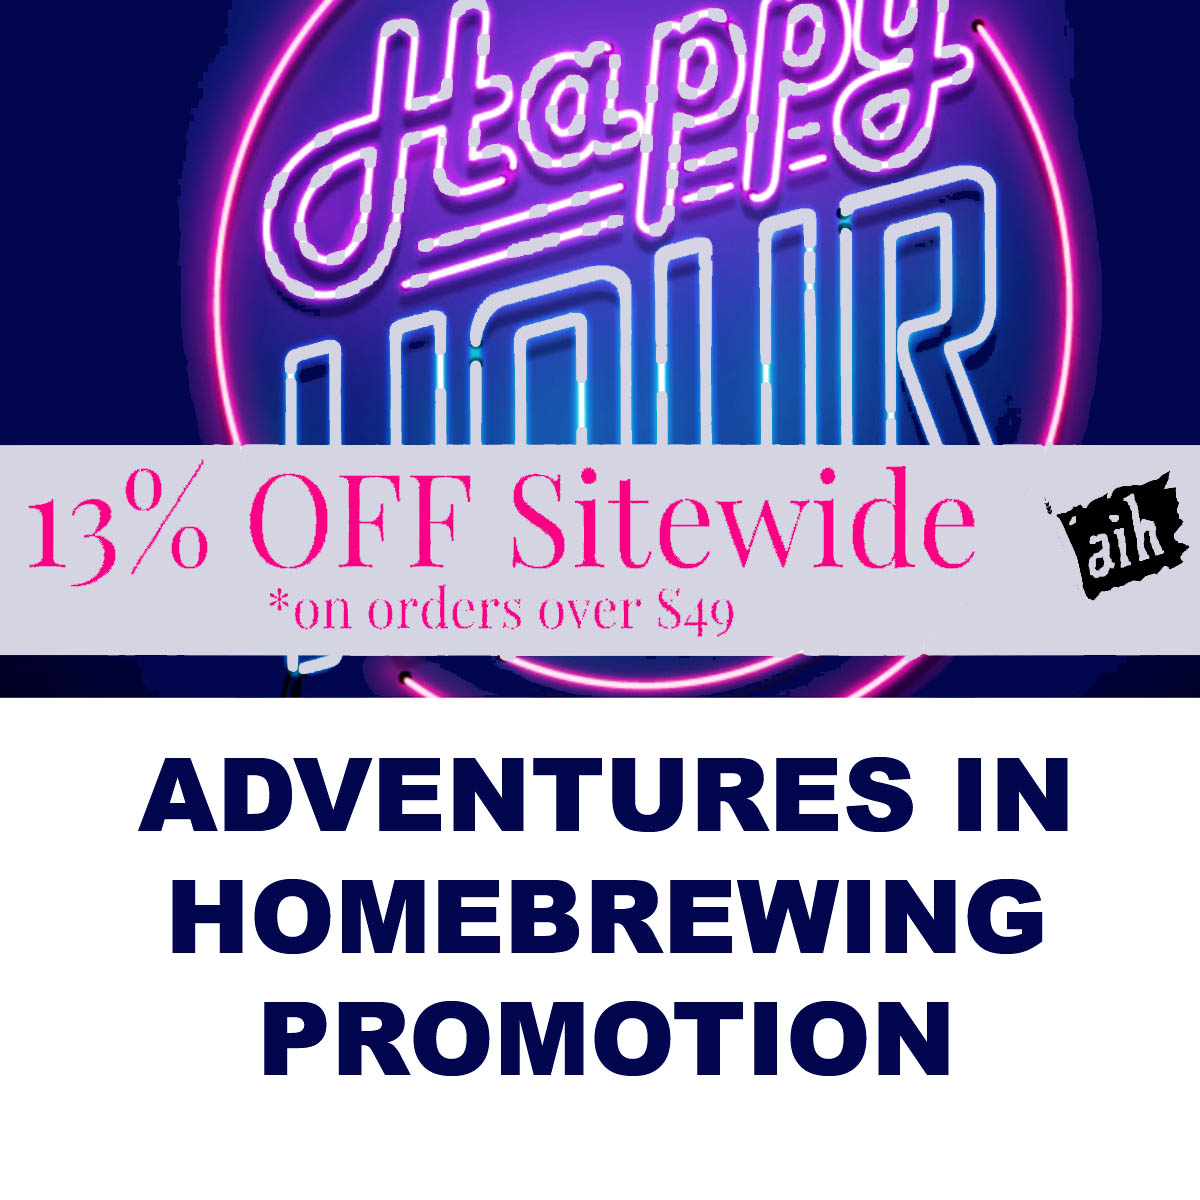 Home Wine Making Coupon Codes for Save 13% at Adventures in Homebrewing Memorial Day Promotion Coupon Code